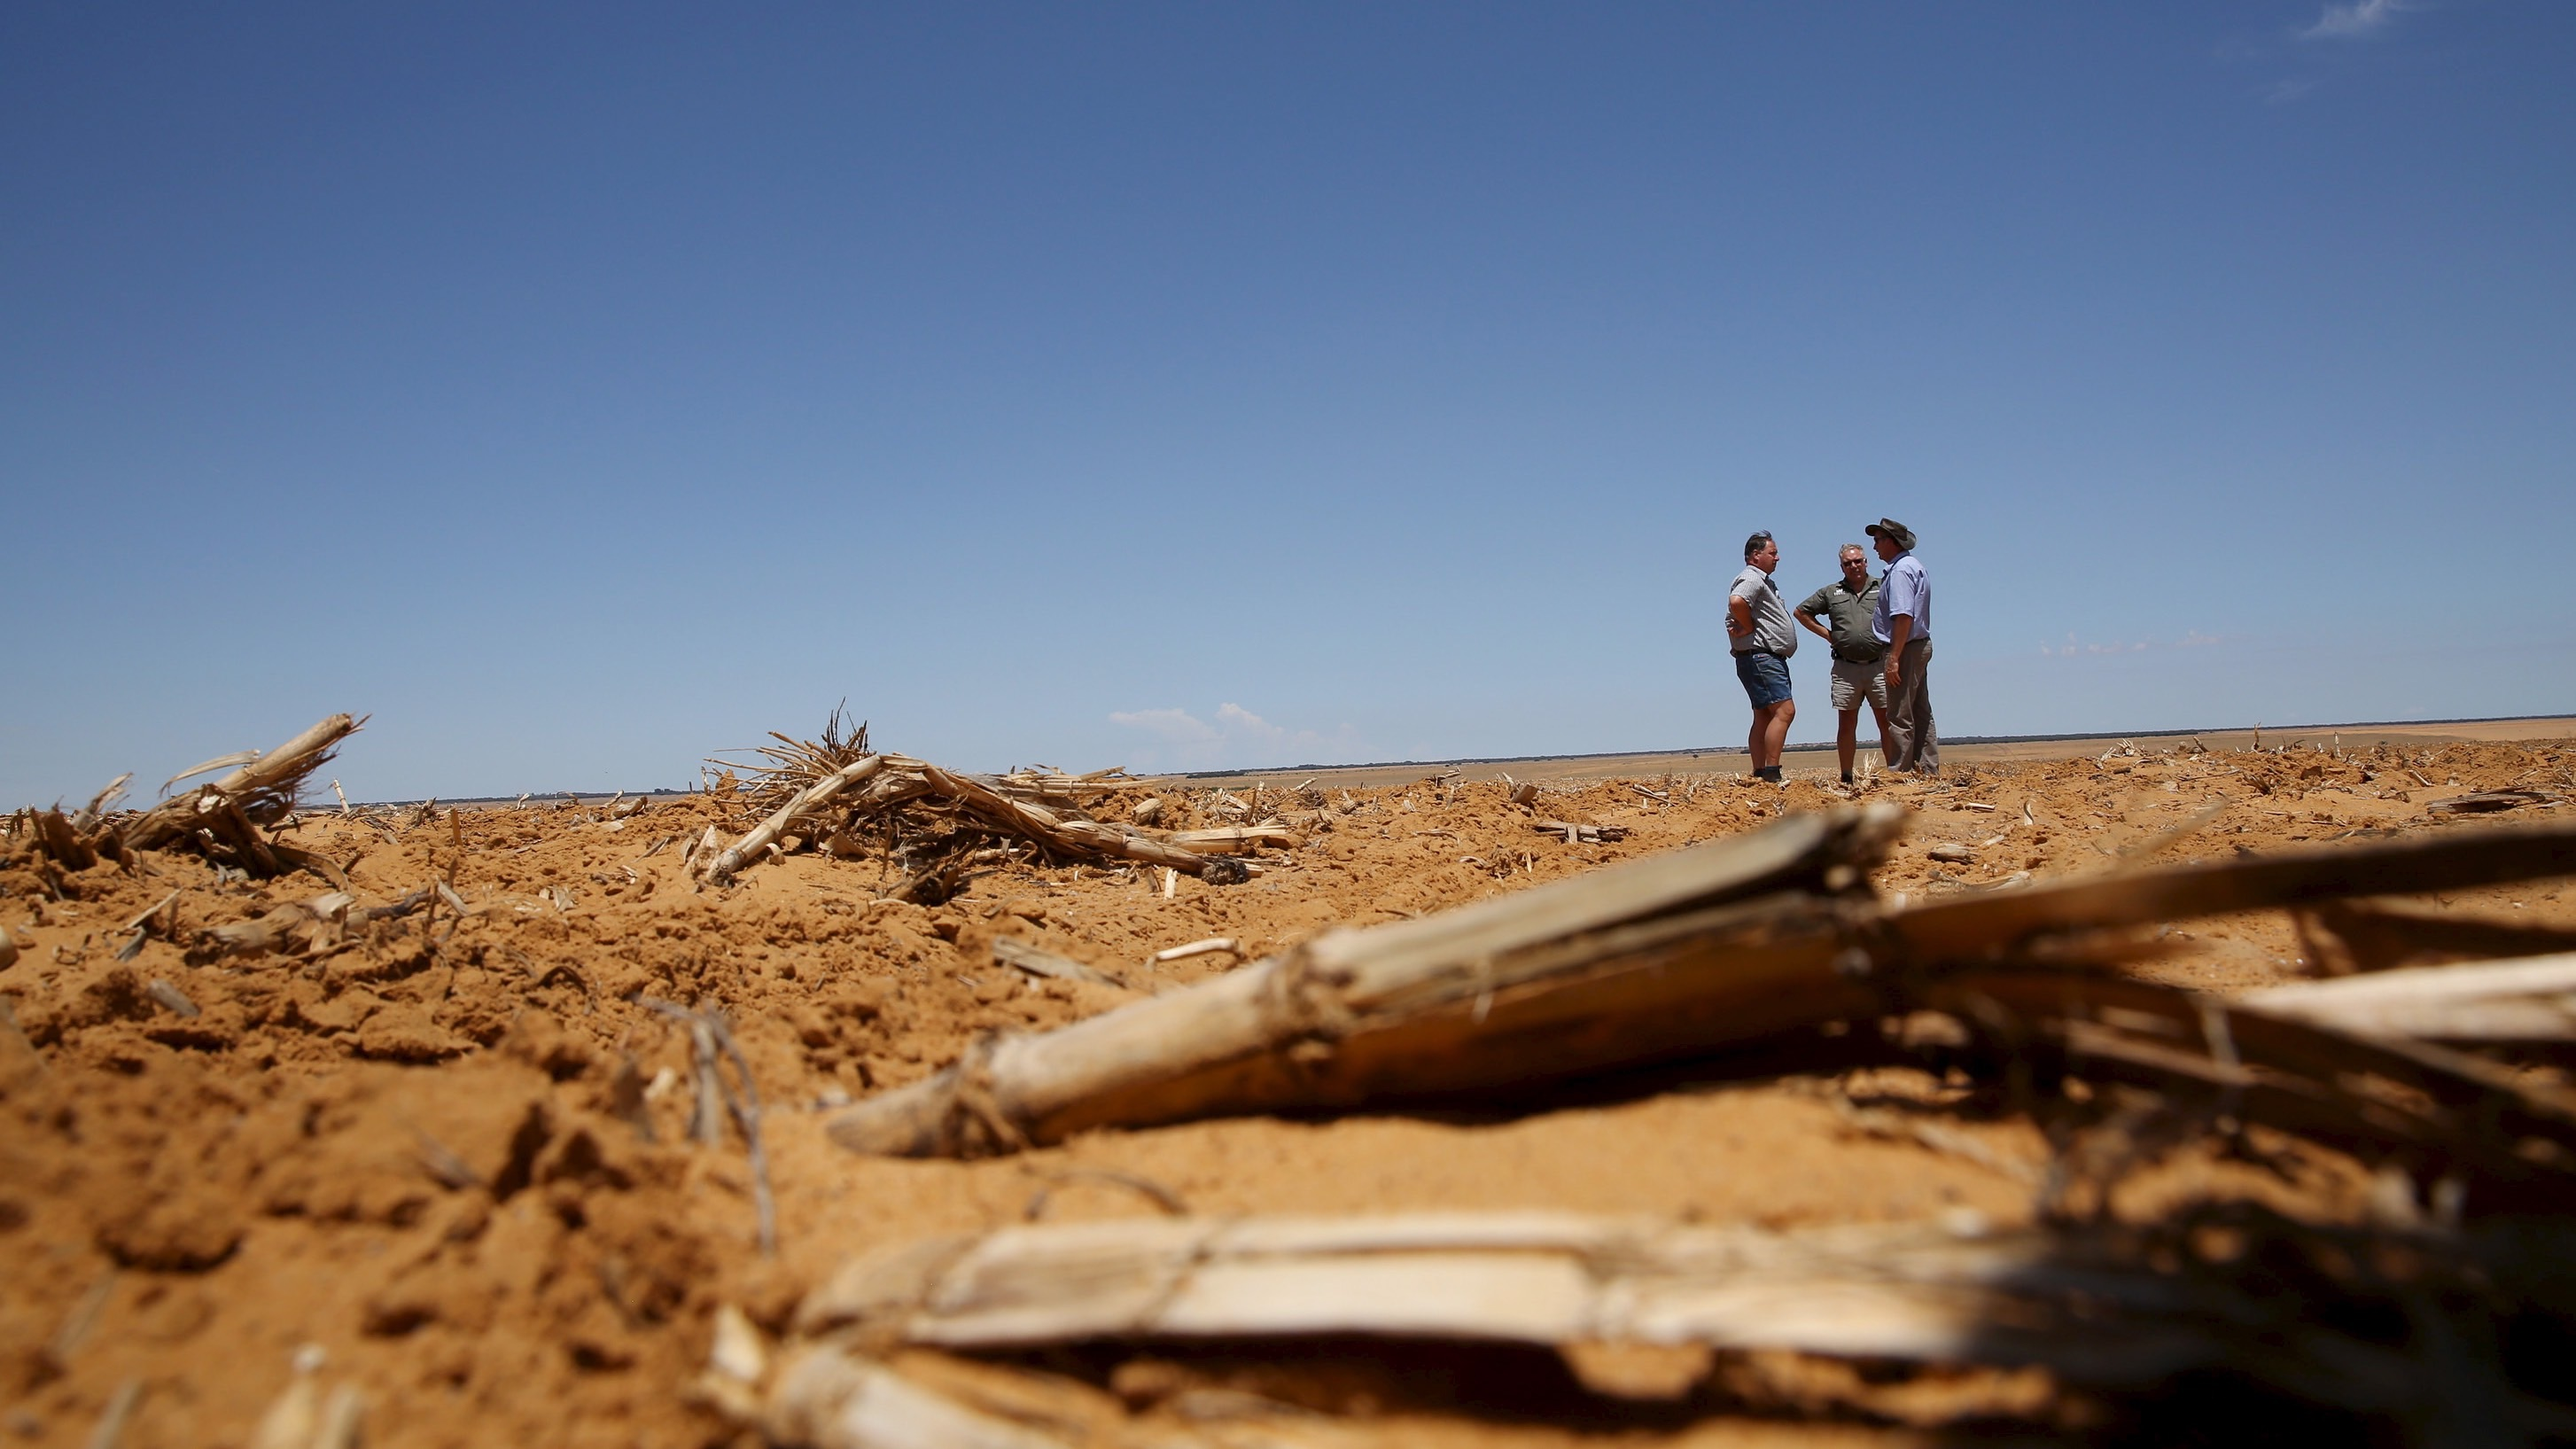 Farmers chat ahead of planting at a maize field in Wesselsbron, a small maize farming town in the Free State province of South Africa, January 13, 2016. Mid-summer rains may be too little, too late for farmers as the South African countryside bakes under the worst drought in over a century. Last year was the driest on record. Picture taken January 13.   REUTERS/Siphiwe Sibeko - RTX22YBA